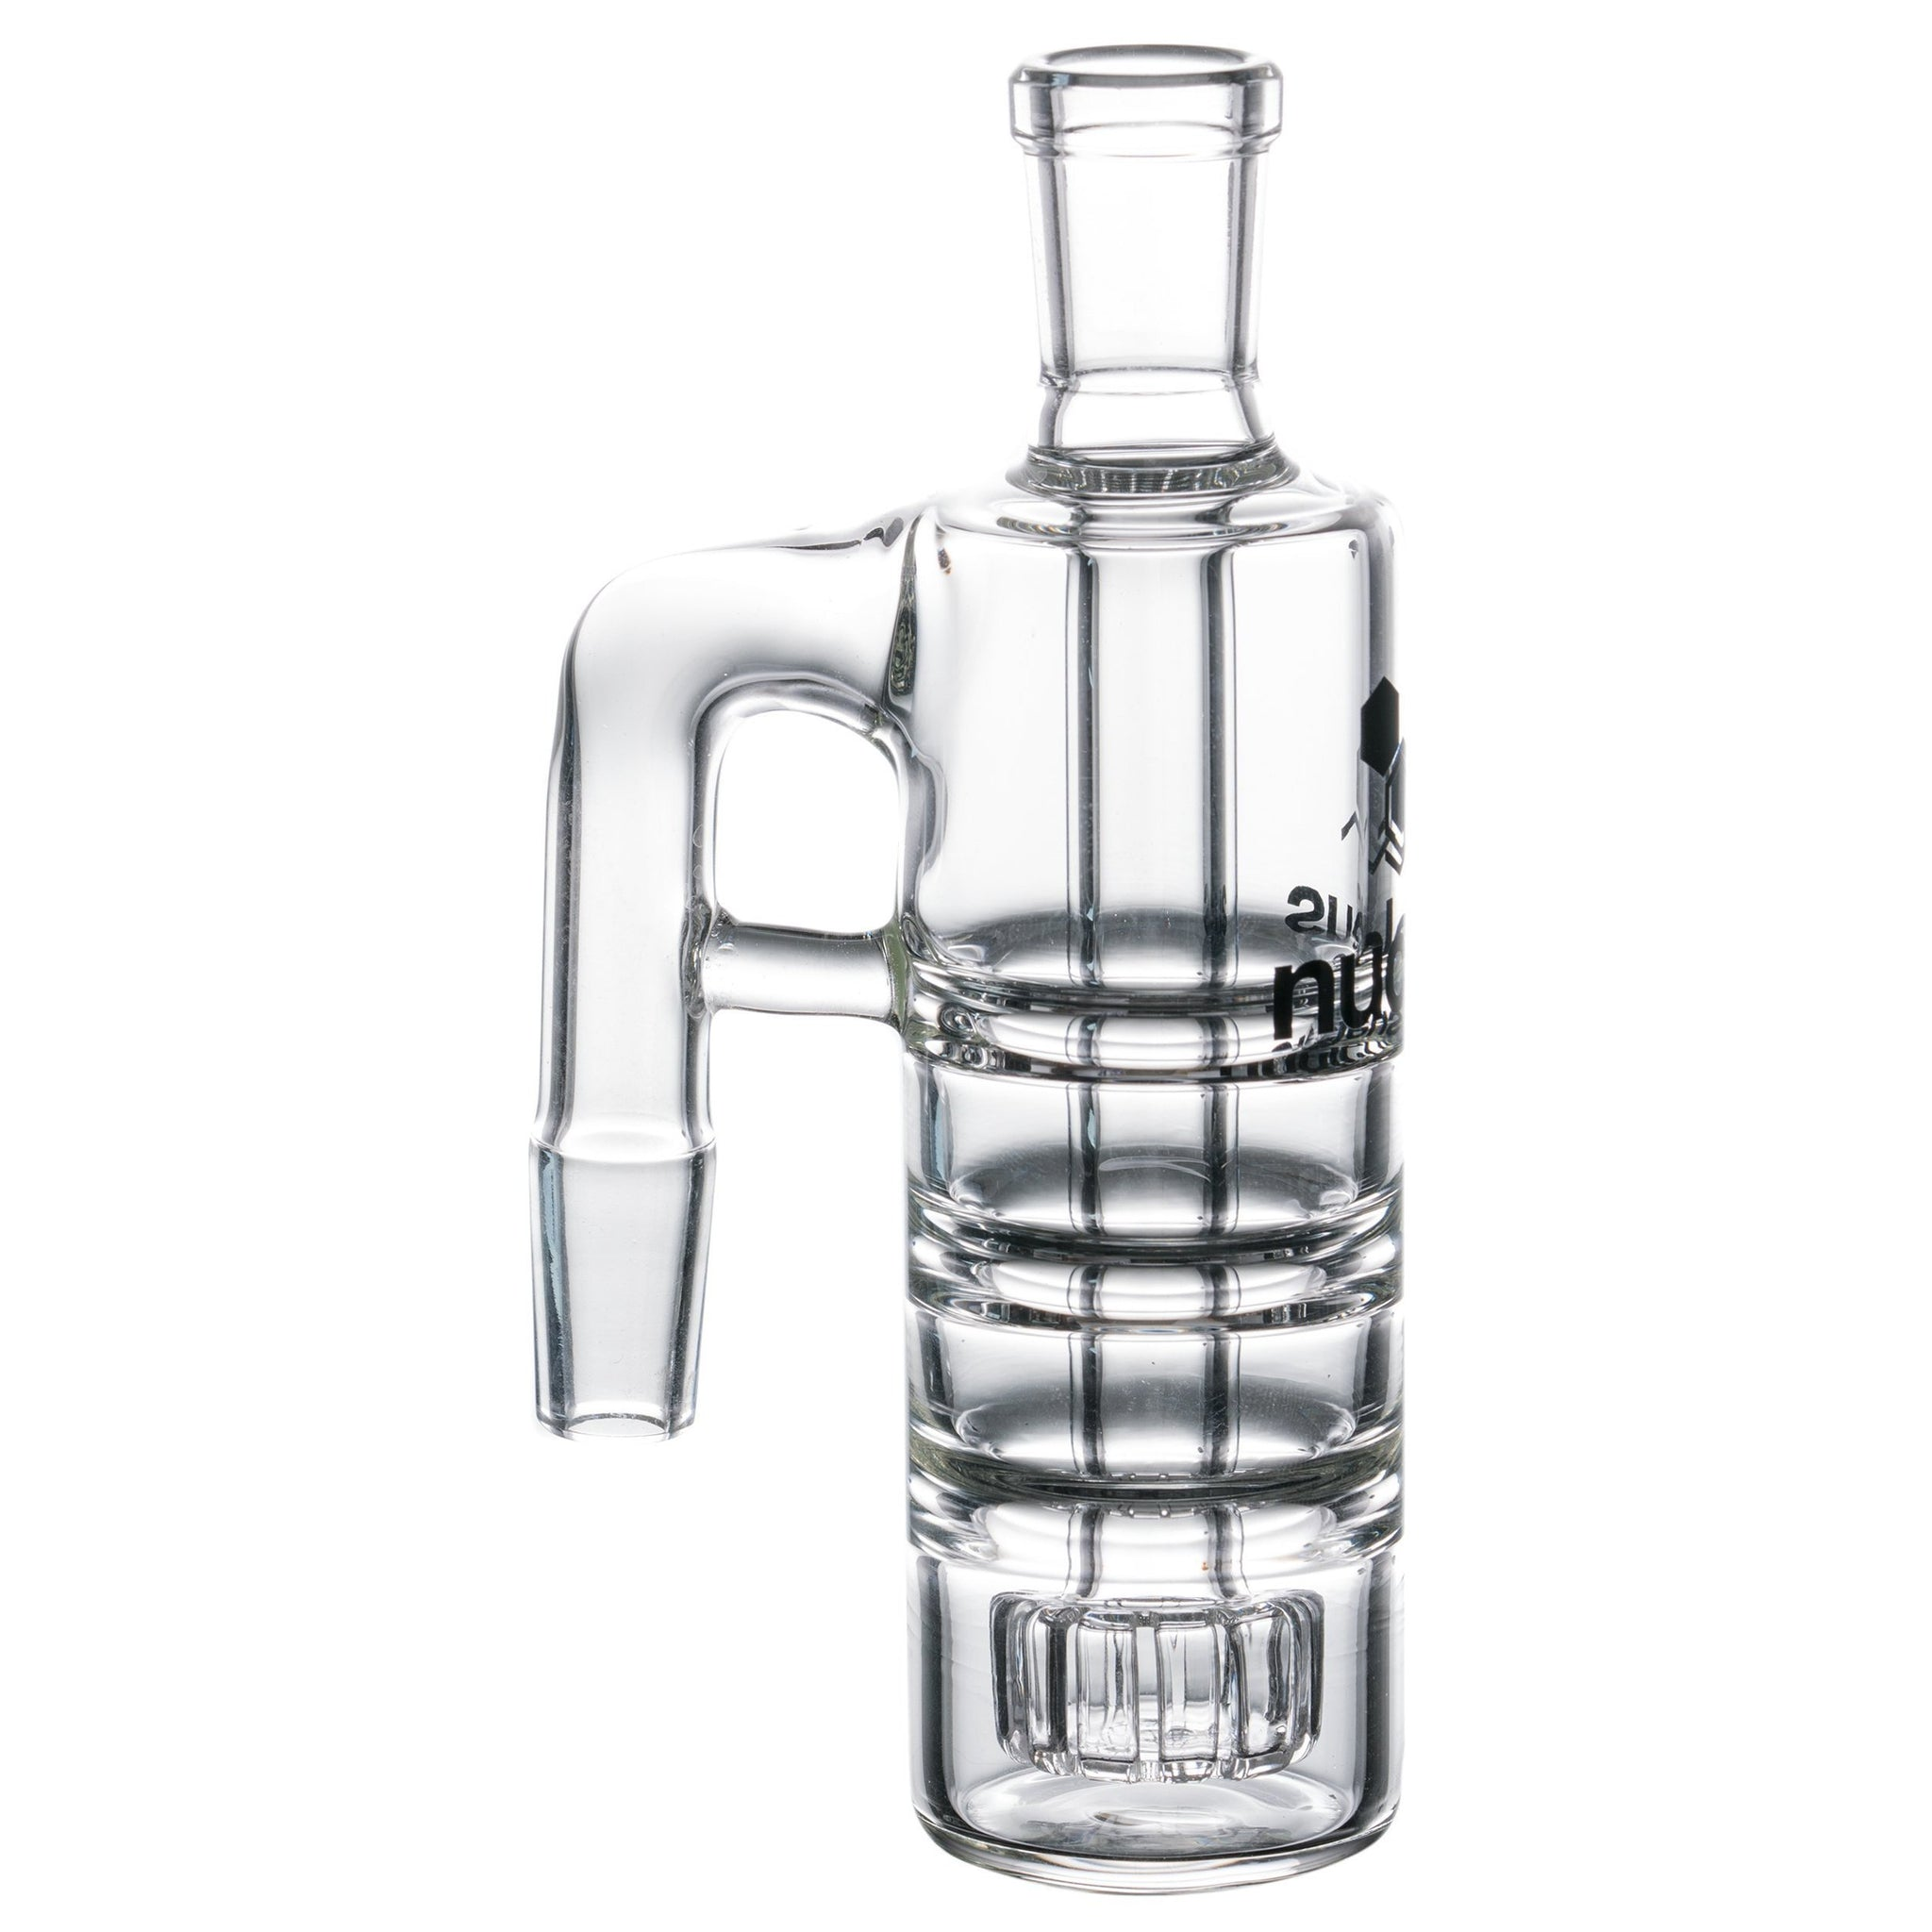 Ladder Style Ashcatcher with Showerhead Perc